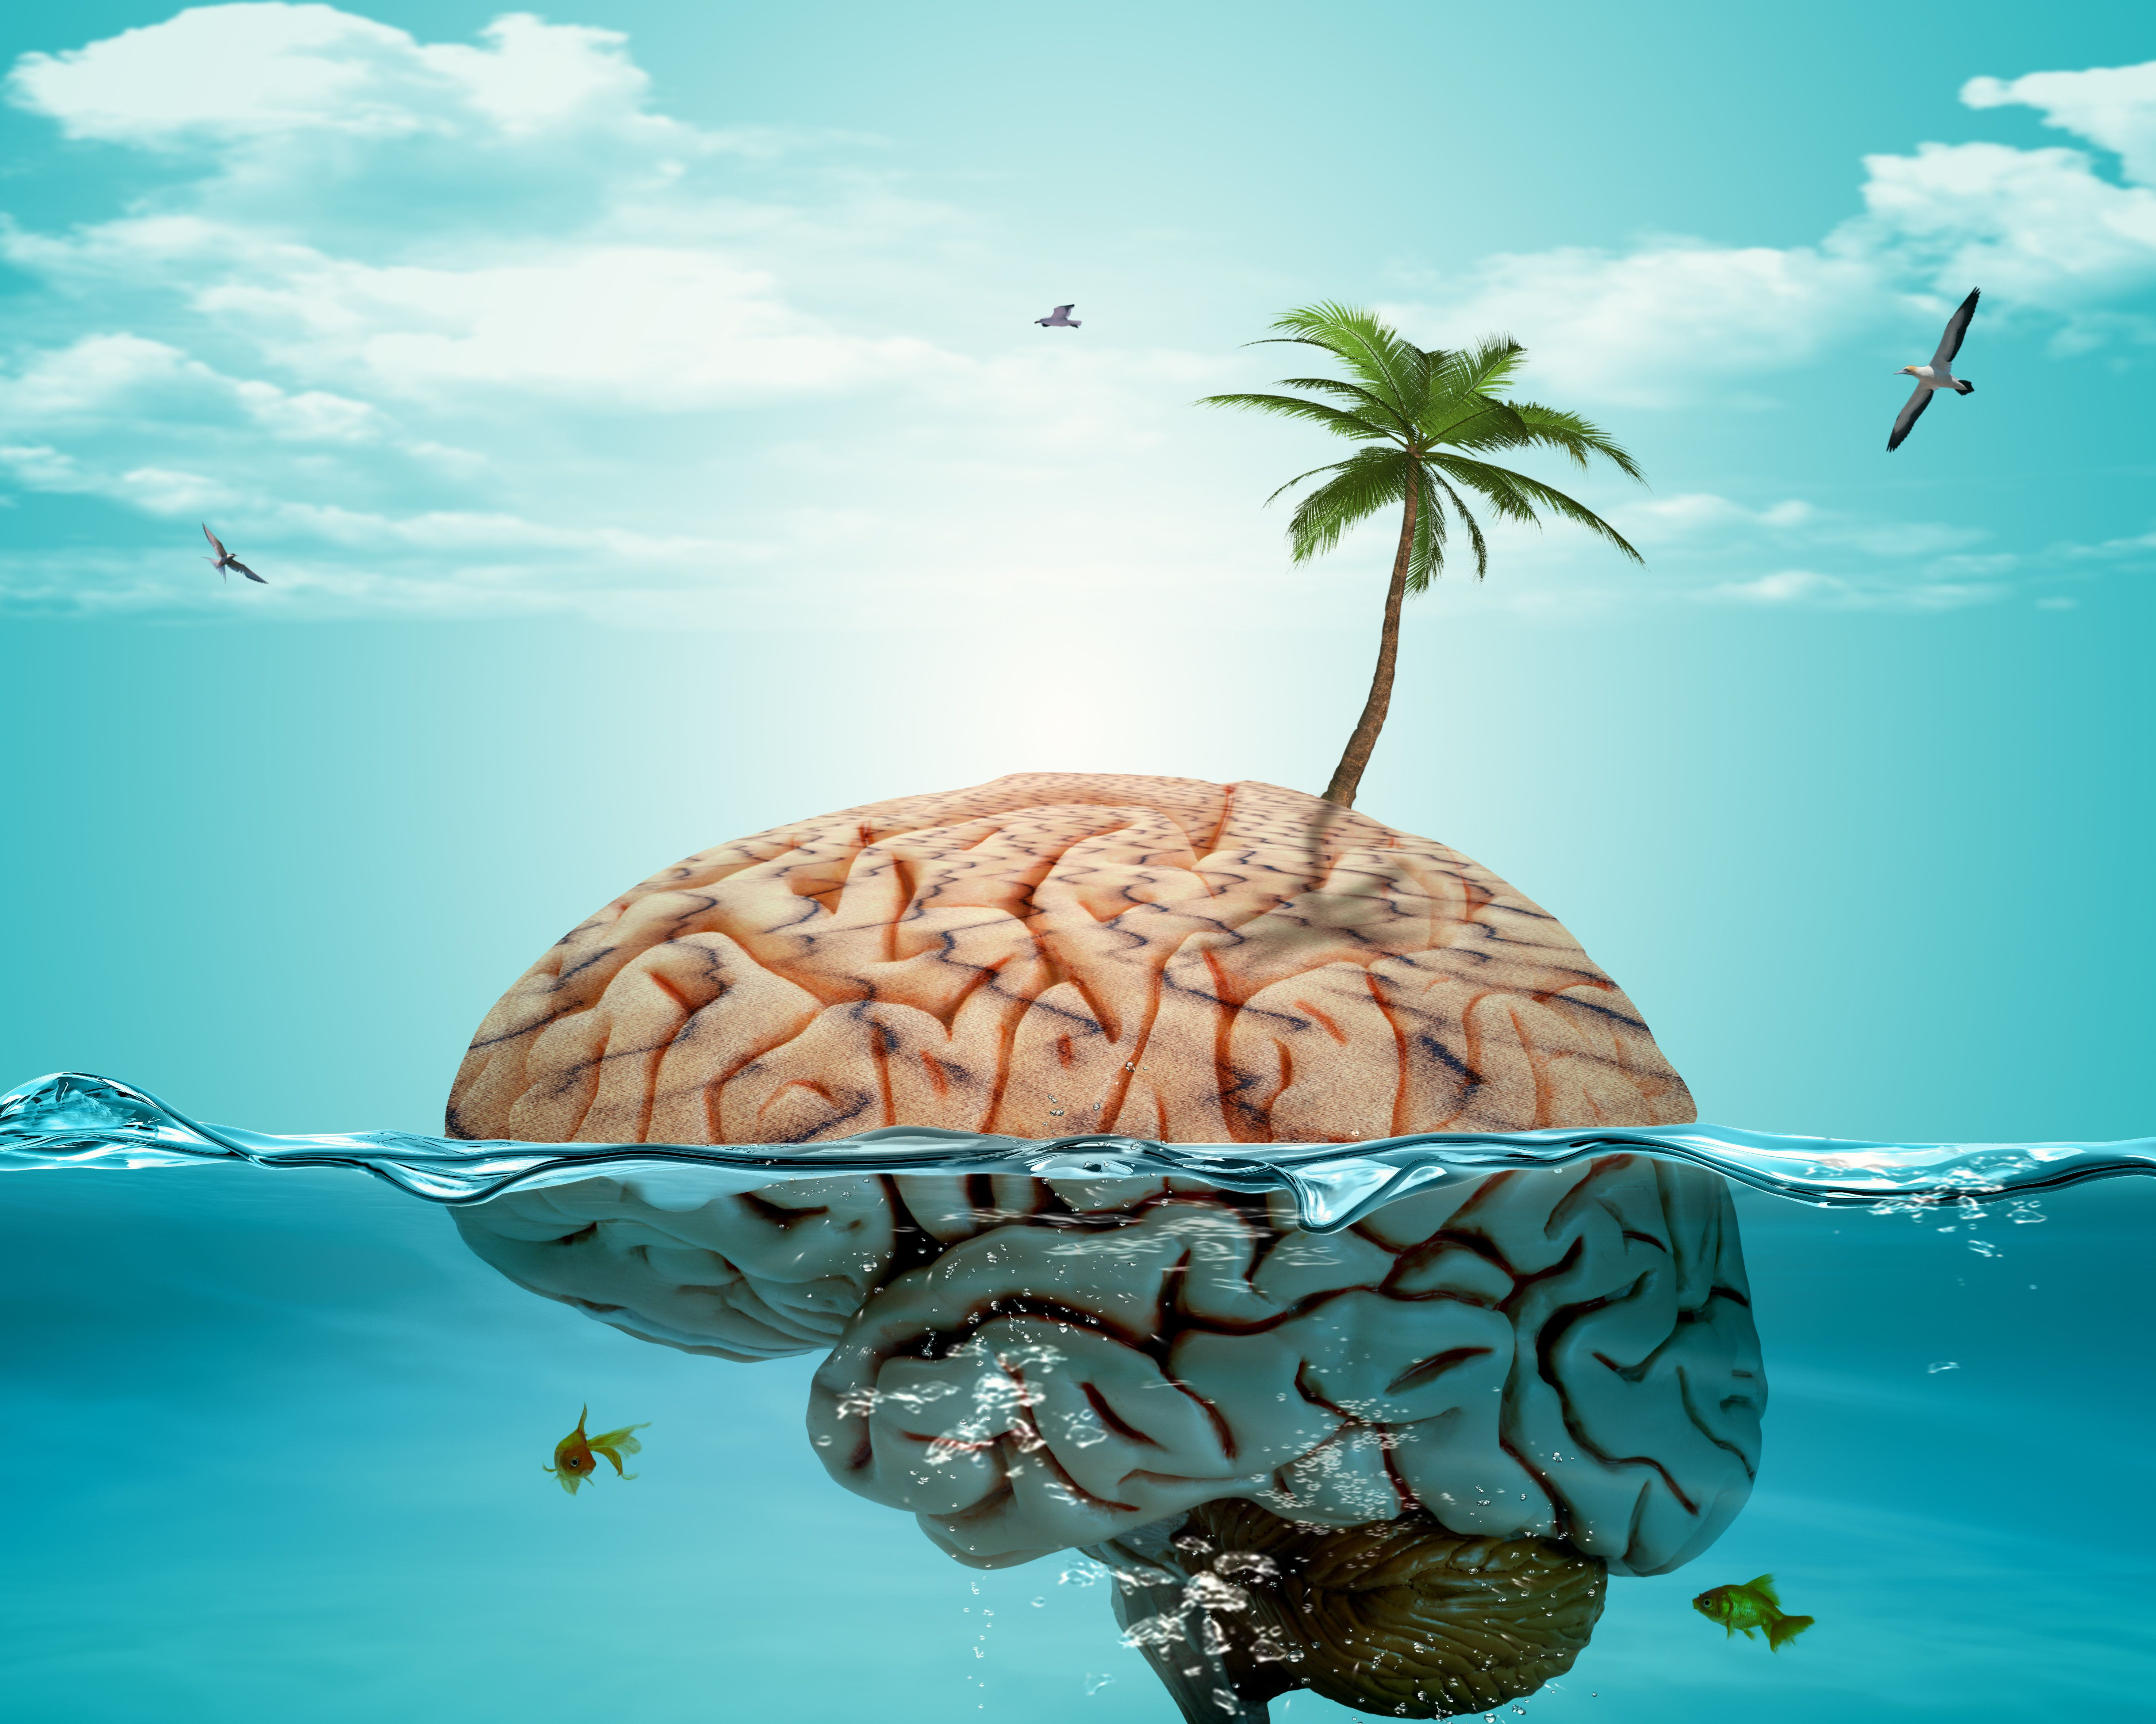 12 Tricks To Rest, Restore And Grow Your Brain When On